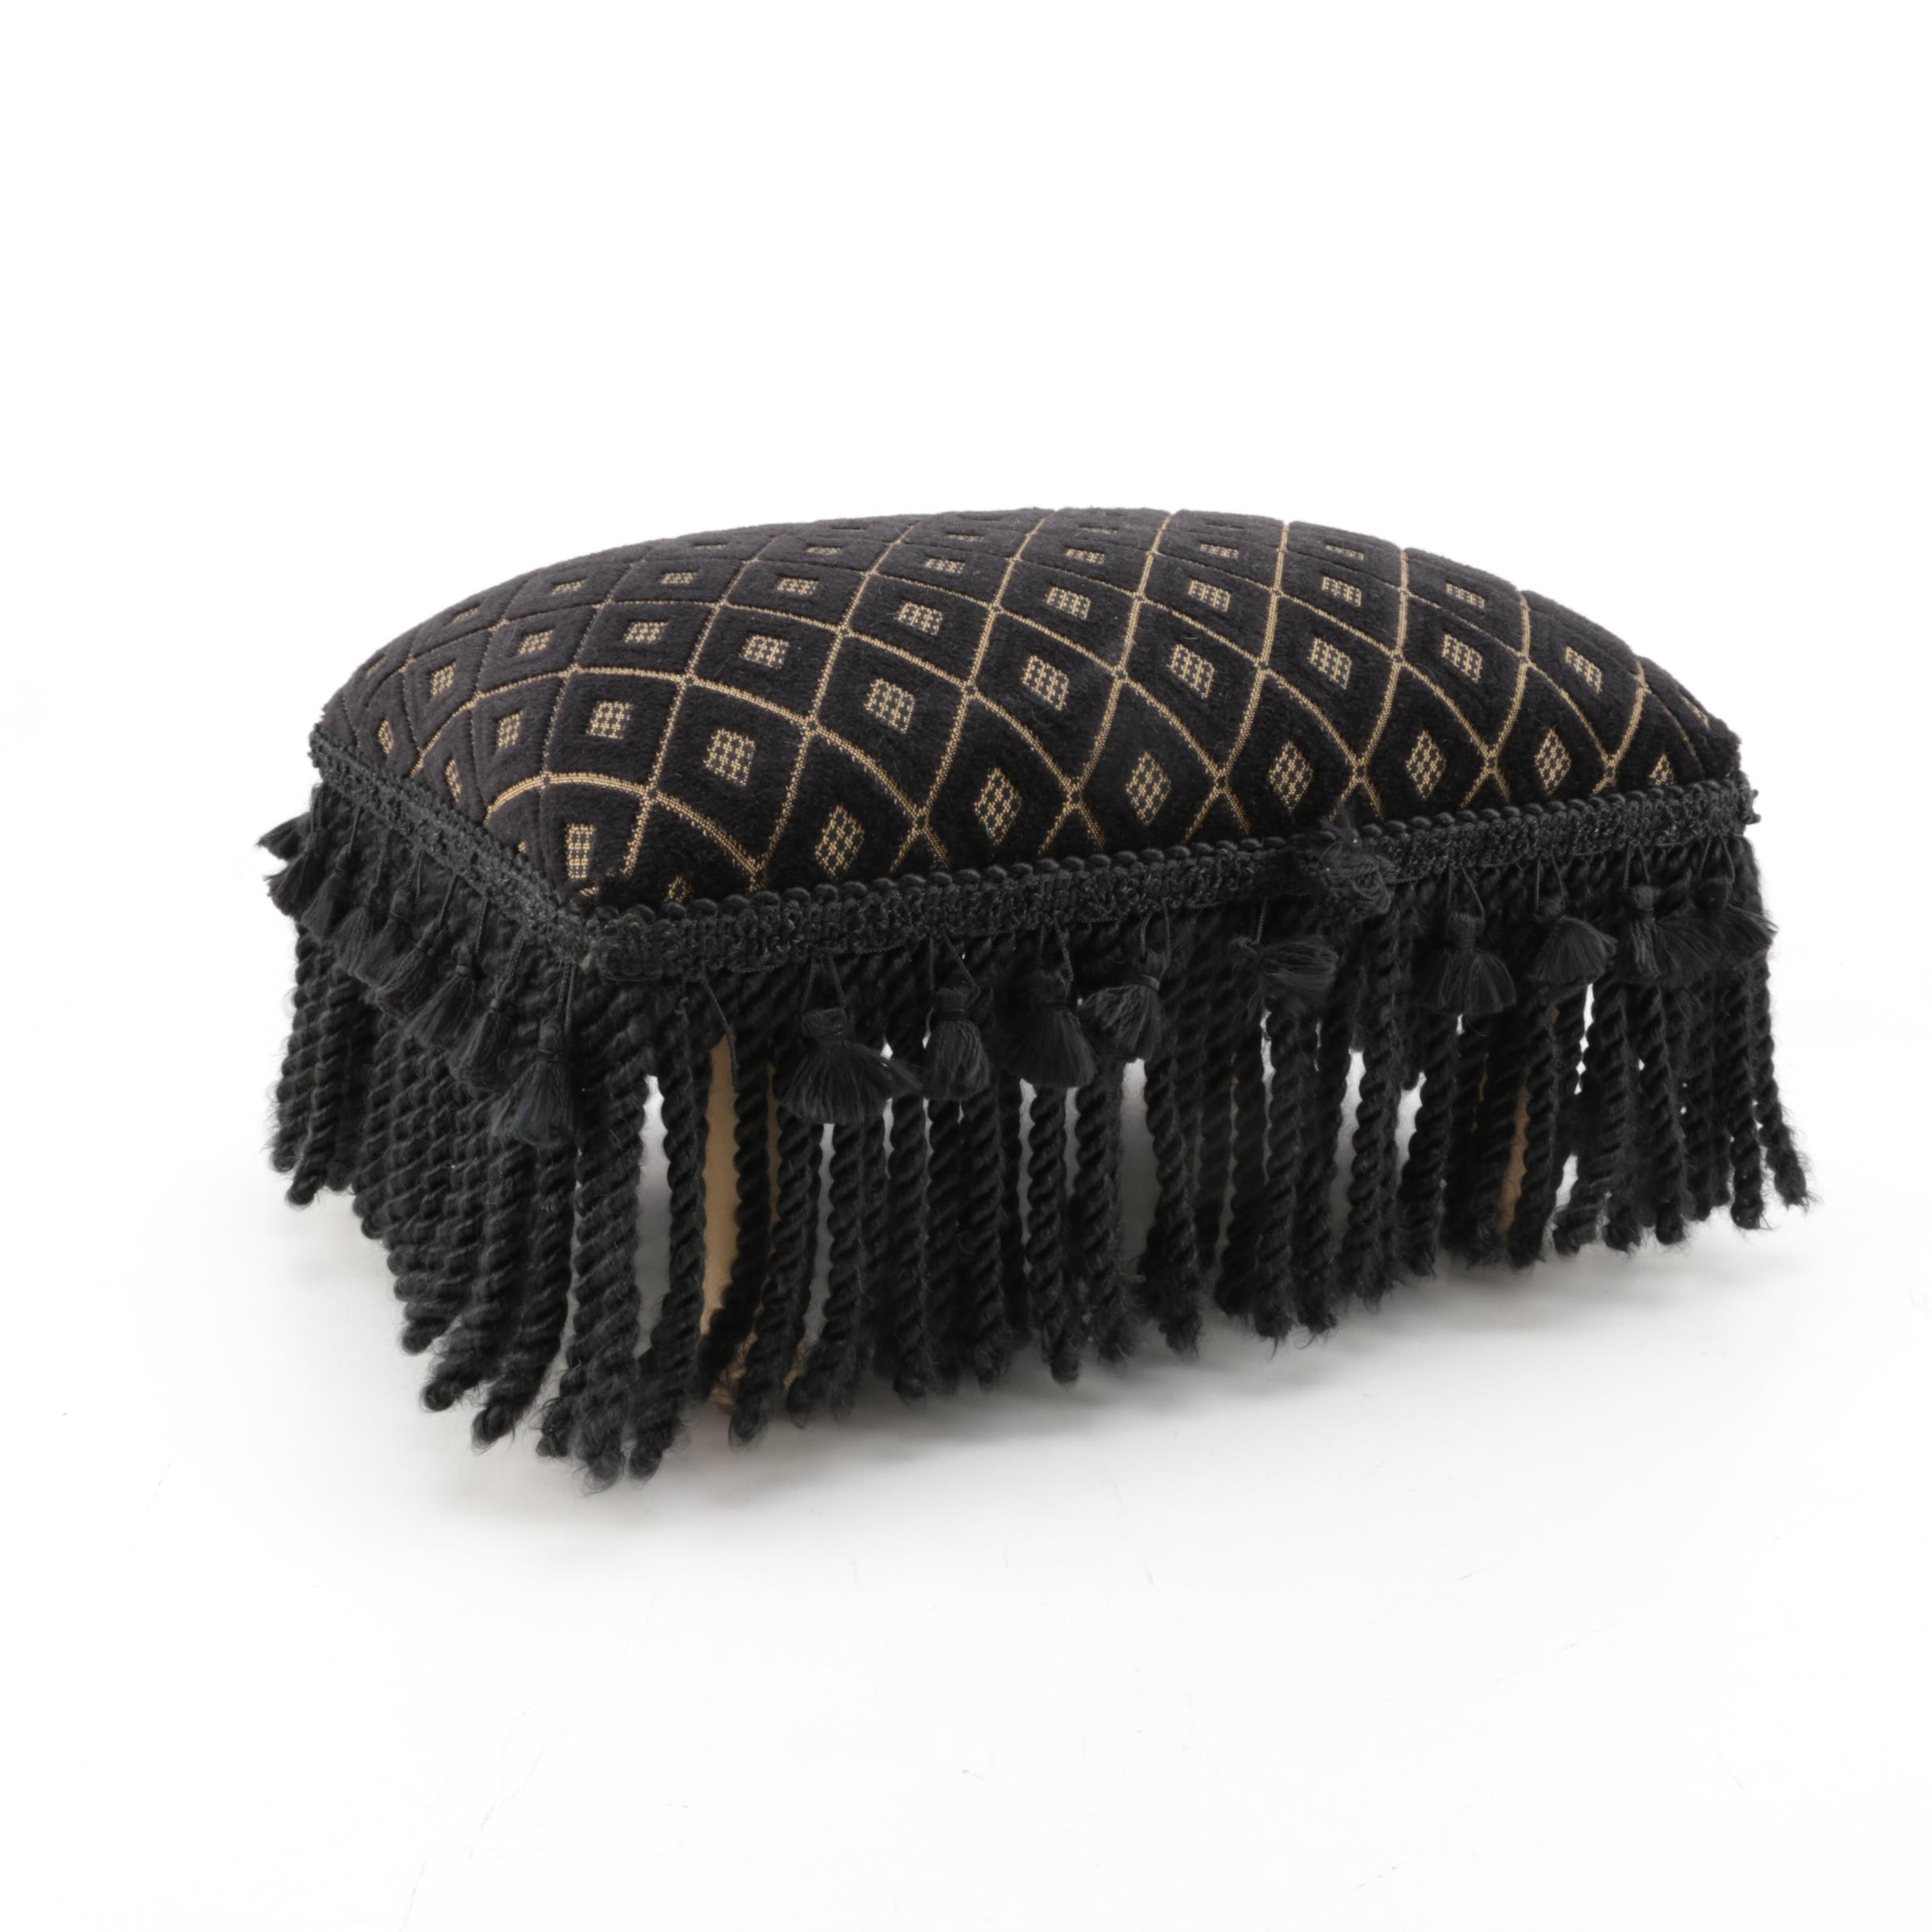 Black Tasseled Footstool by Eastern Accents